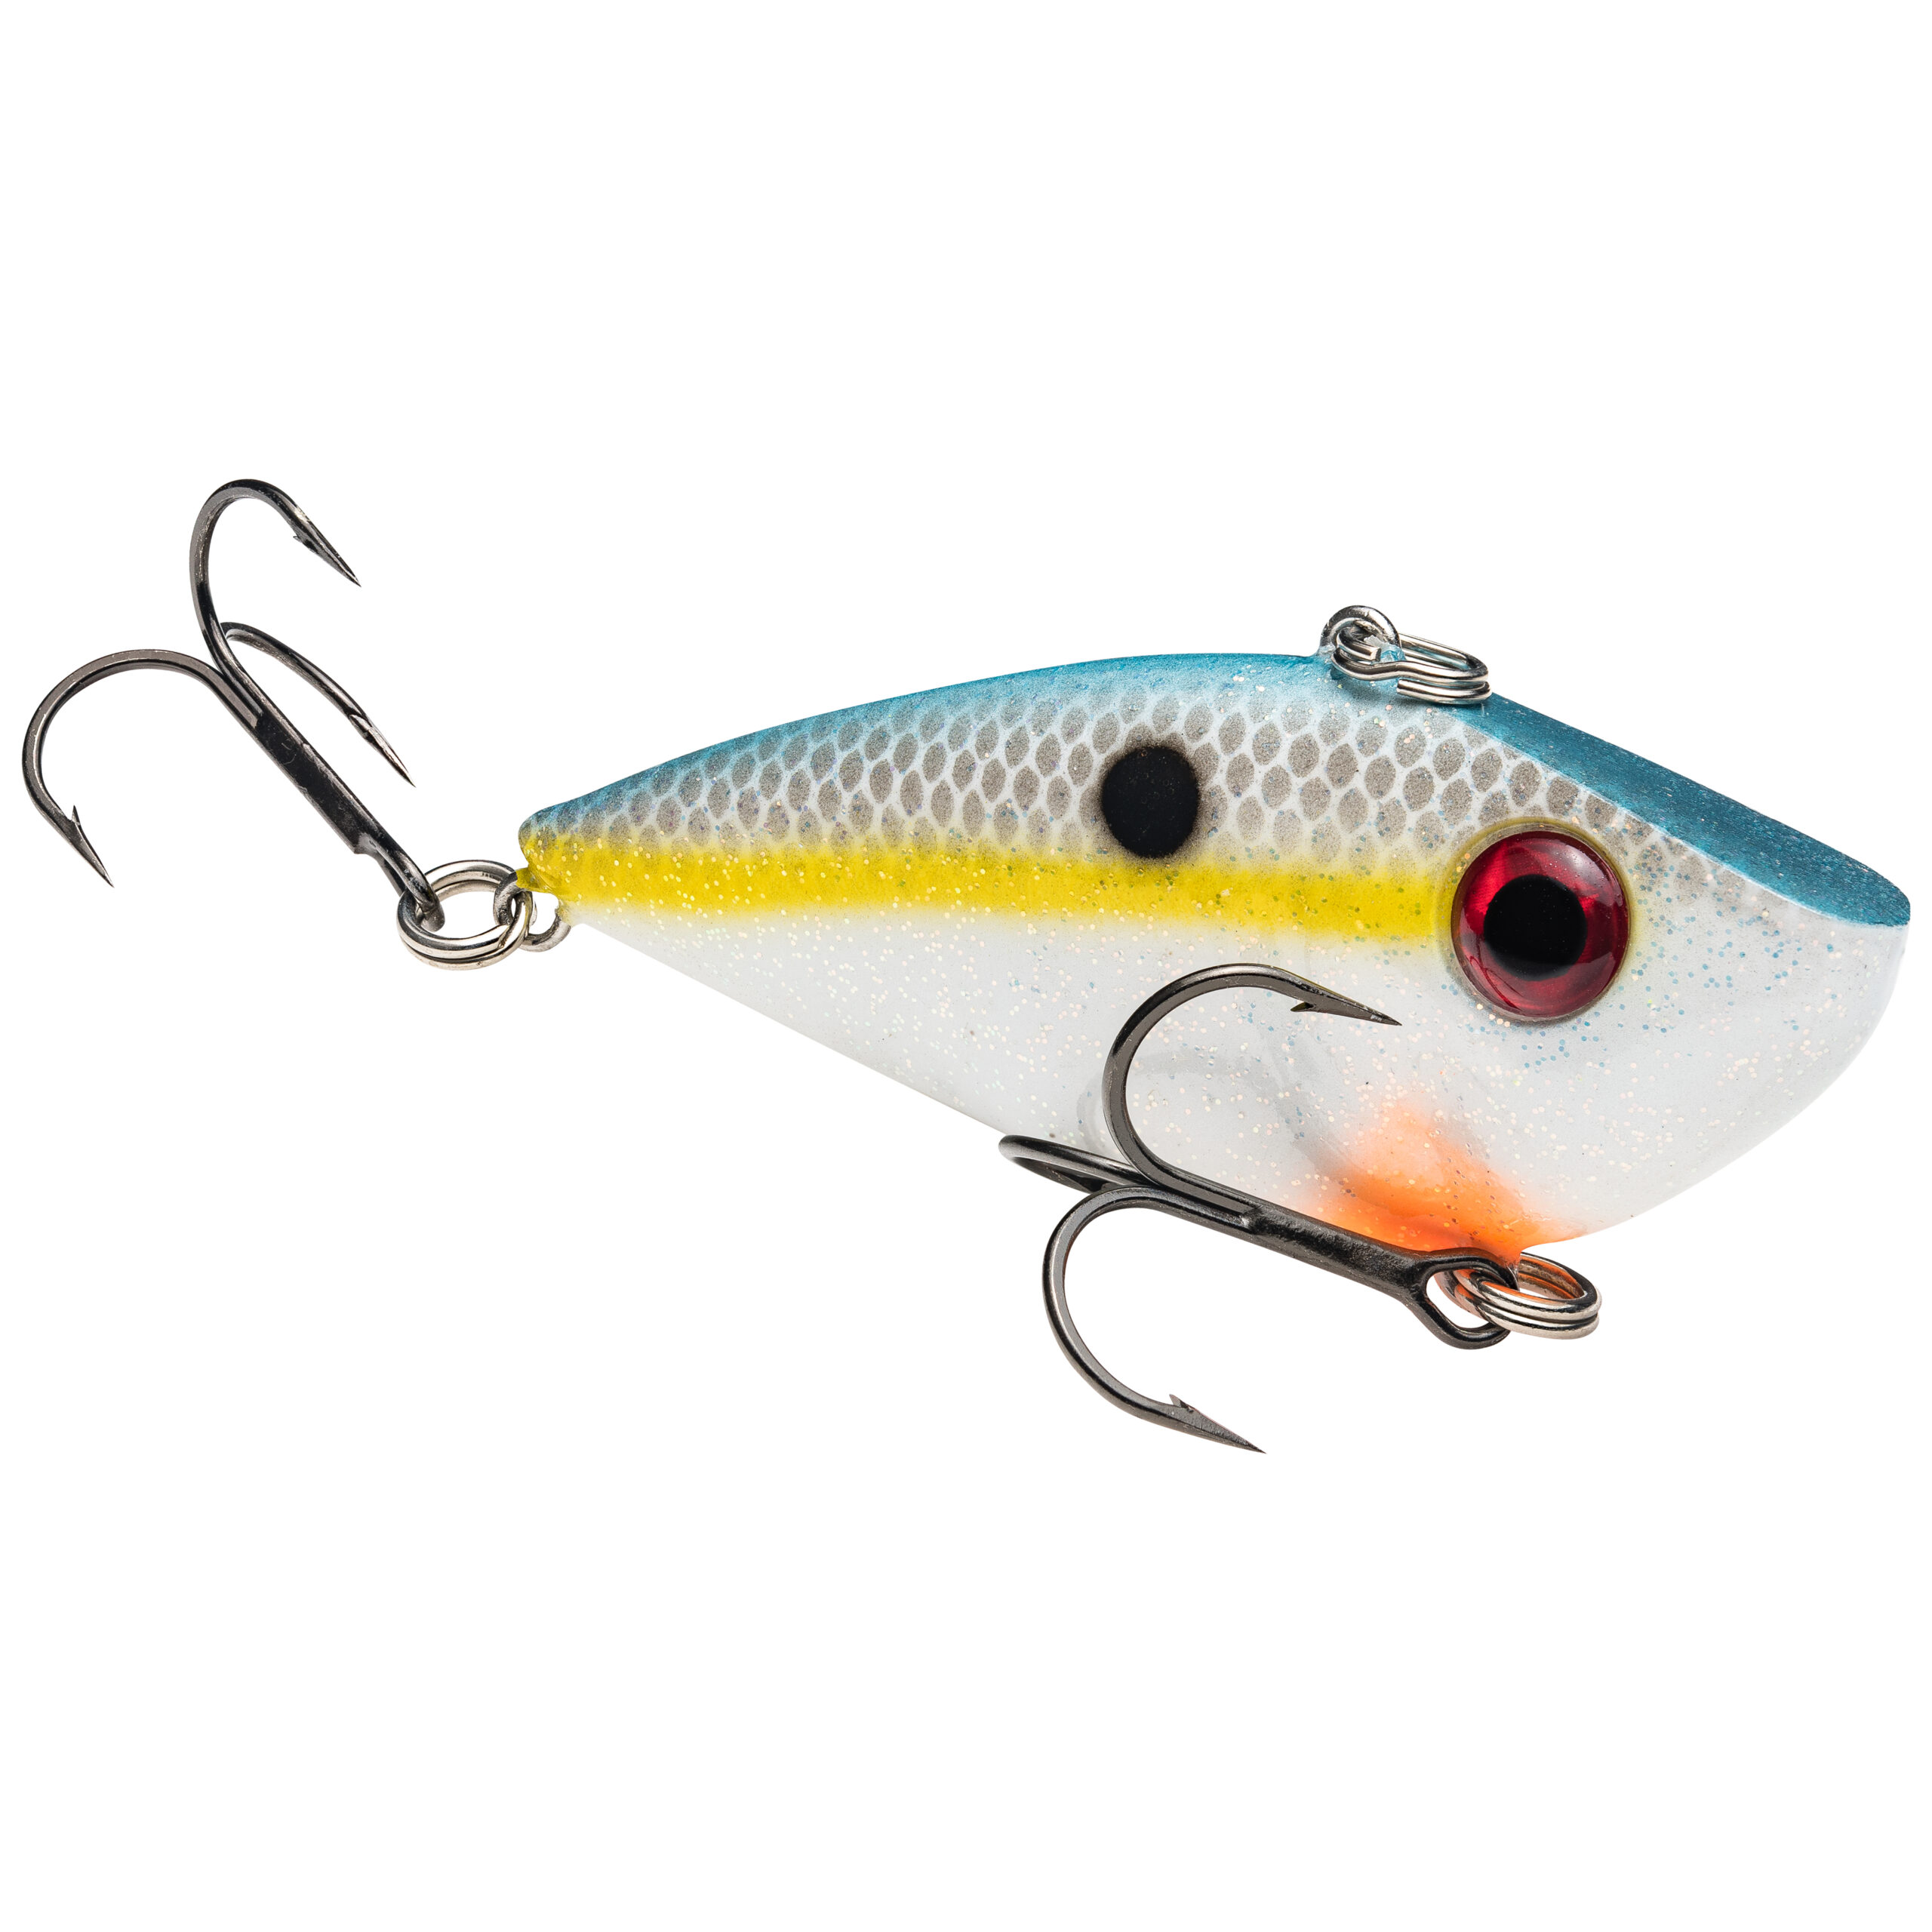 Strike King Lures – Crankbaits – Lipless Rattle Trap – Red Eyed Shad - 1/4oz - REYESD14-590 - Sexy Shad